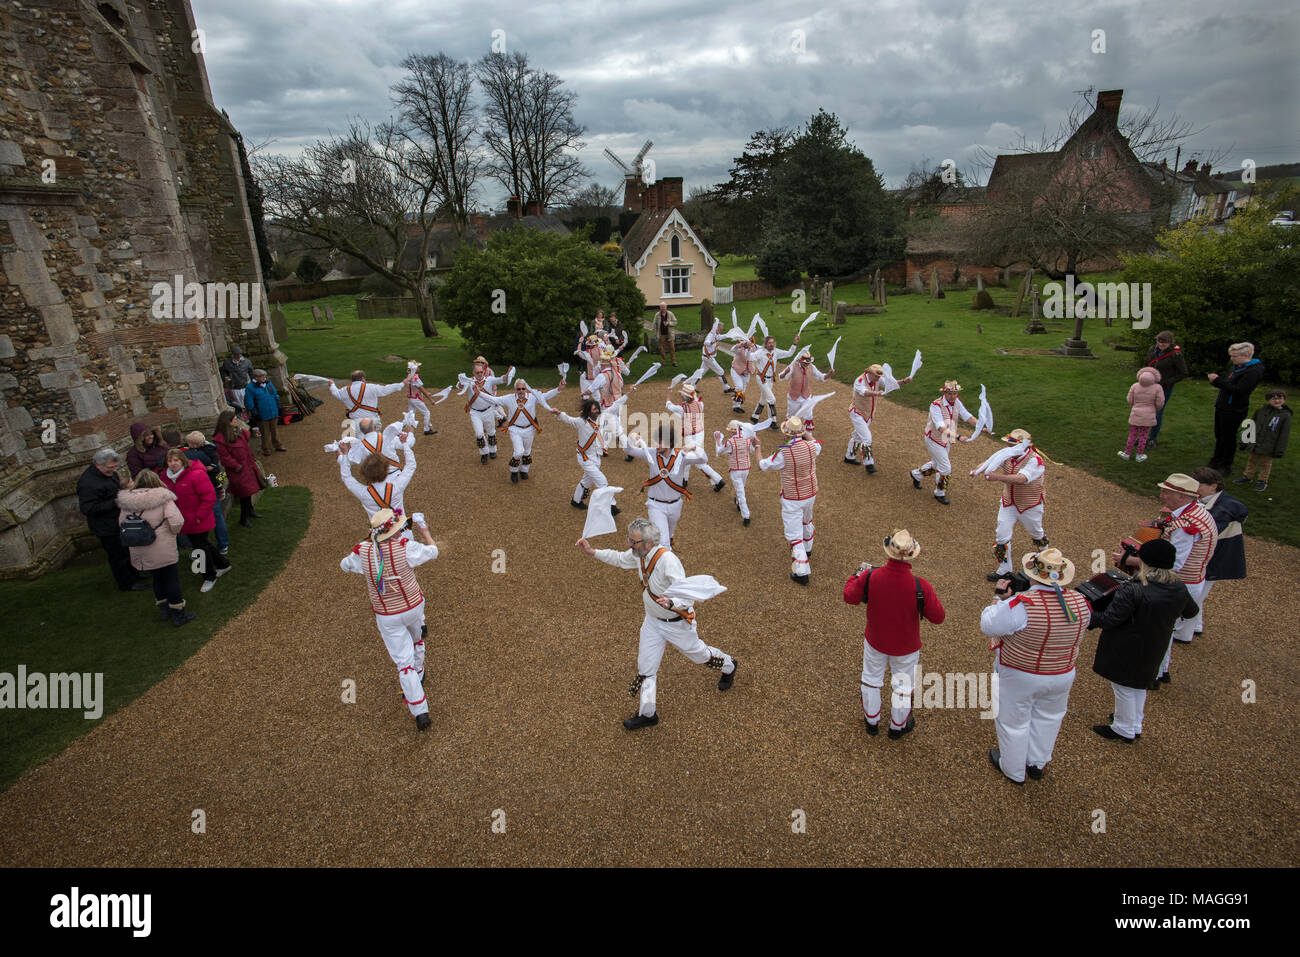 Church Yard Thaxted, Essex. 2nd Apr, 2018. Traditional Easter Monday Morris Dancing. Under louring skies the Thaxted Morris Men ( red and white stripes) dance with Devil's Dyke Morris Men from Newmarket area ( white shirts ) on Easter Monday in front of the ancient Alms Houses and John Webb's Windmill in the Church Yard Thaxted, Essex. 2 April 2018 Credit: BRIAN HARRIS/Alamy Live News - Stock Image